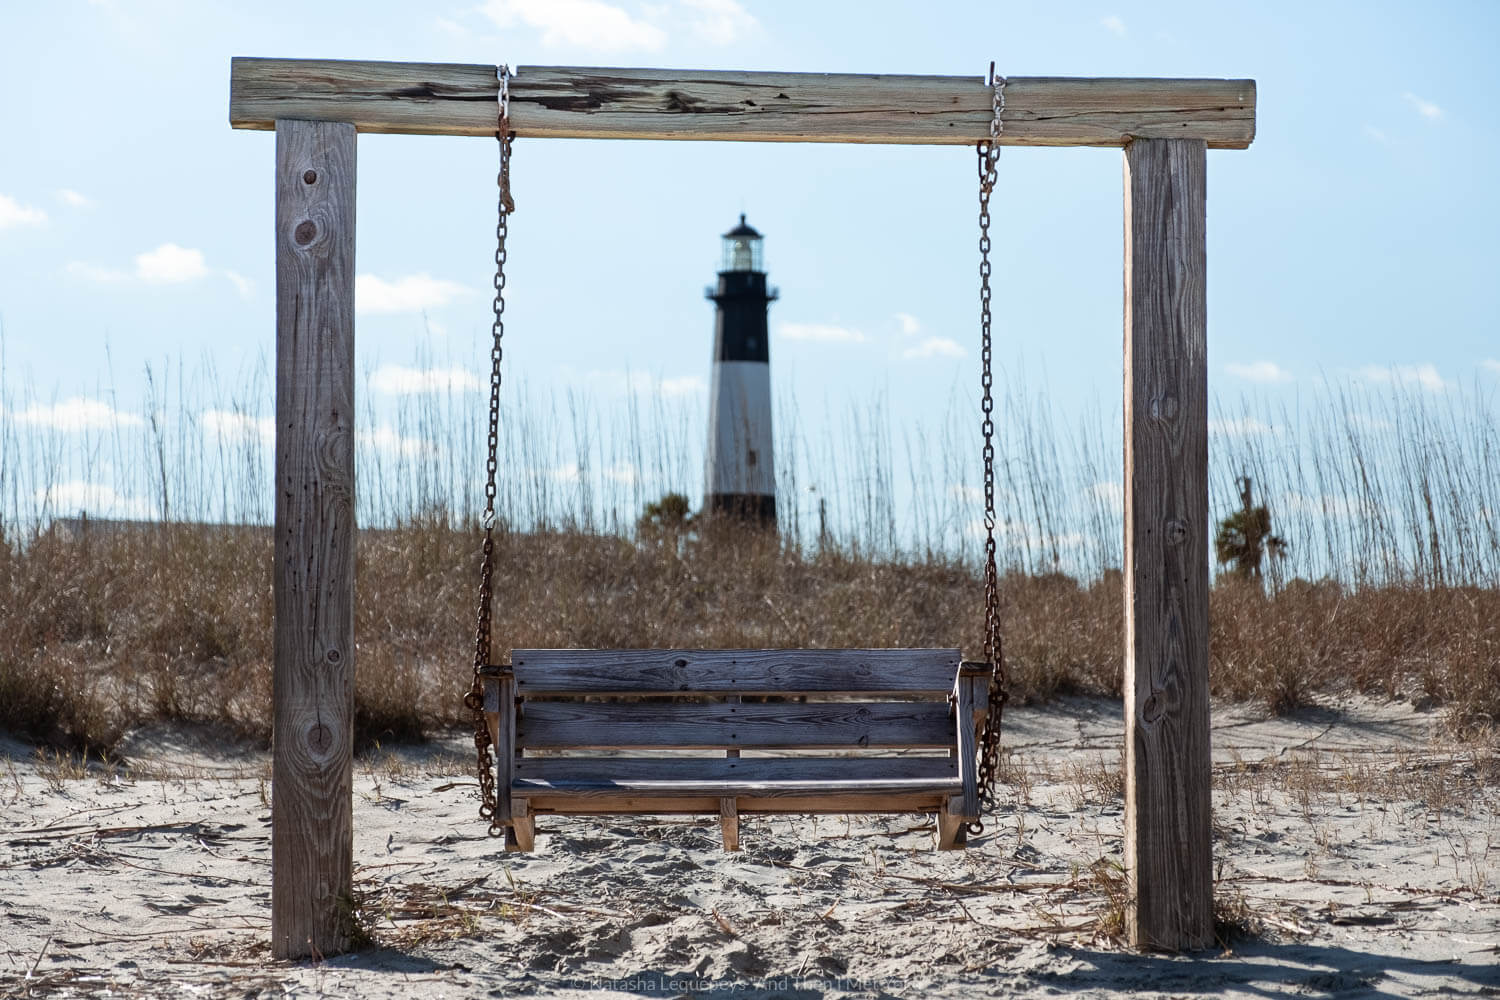 """A wooden bench on the beach in Tybee Island - Savannah, Georgia. Travel photography and guide by © Natasha Lequepeys for """"And Then I Met Yoko"""". #savannah #usa #travelguide #travelblog"""